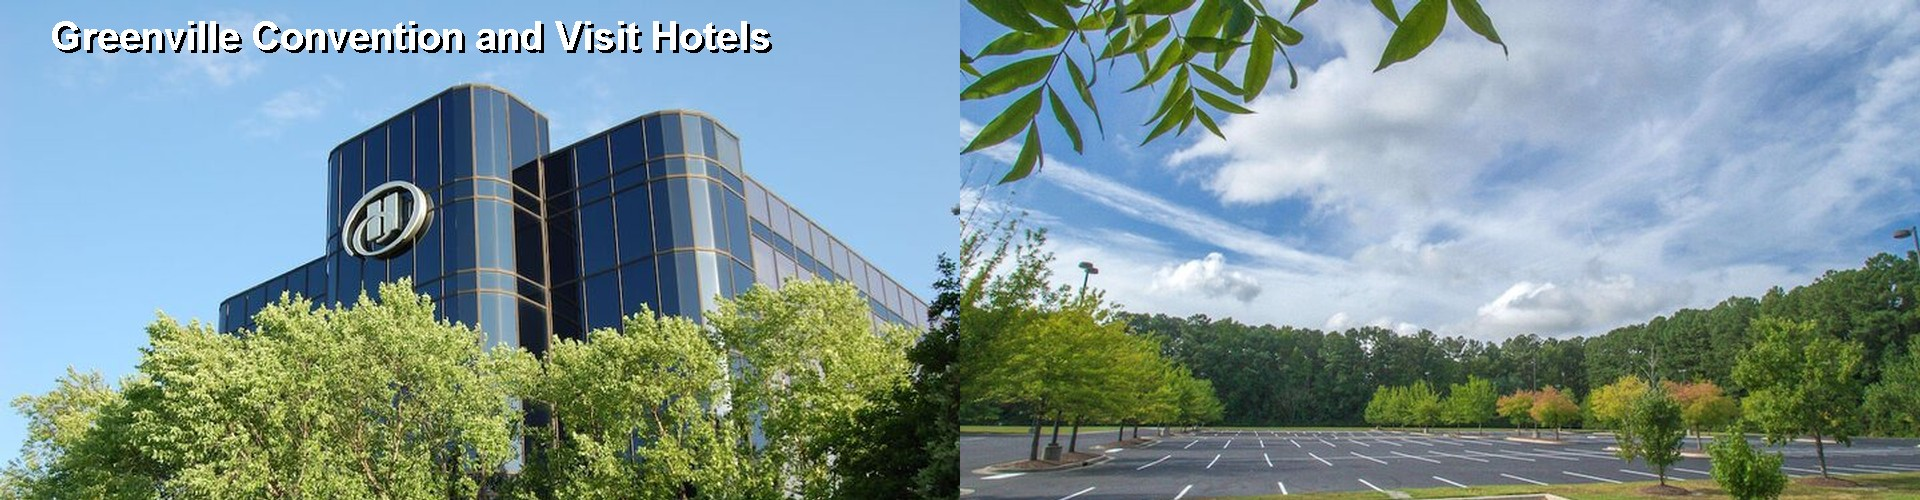 4 Best Hotels near Greenville Convention and Visit